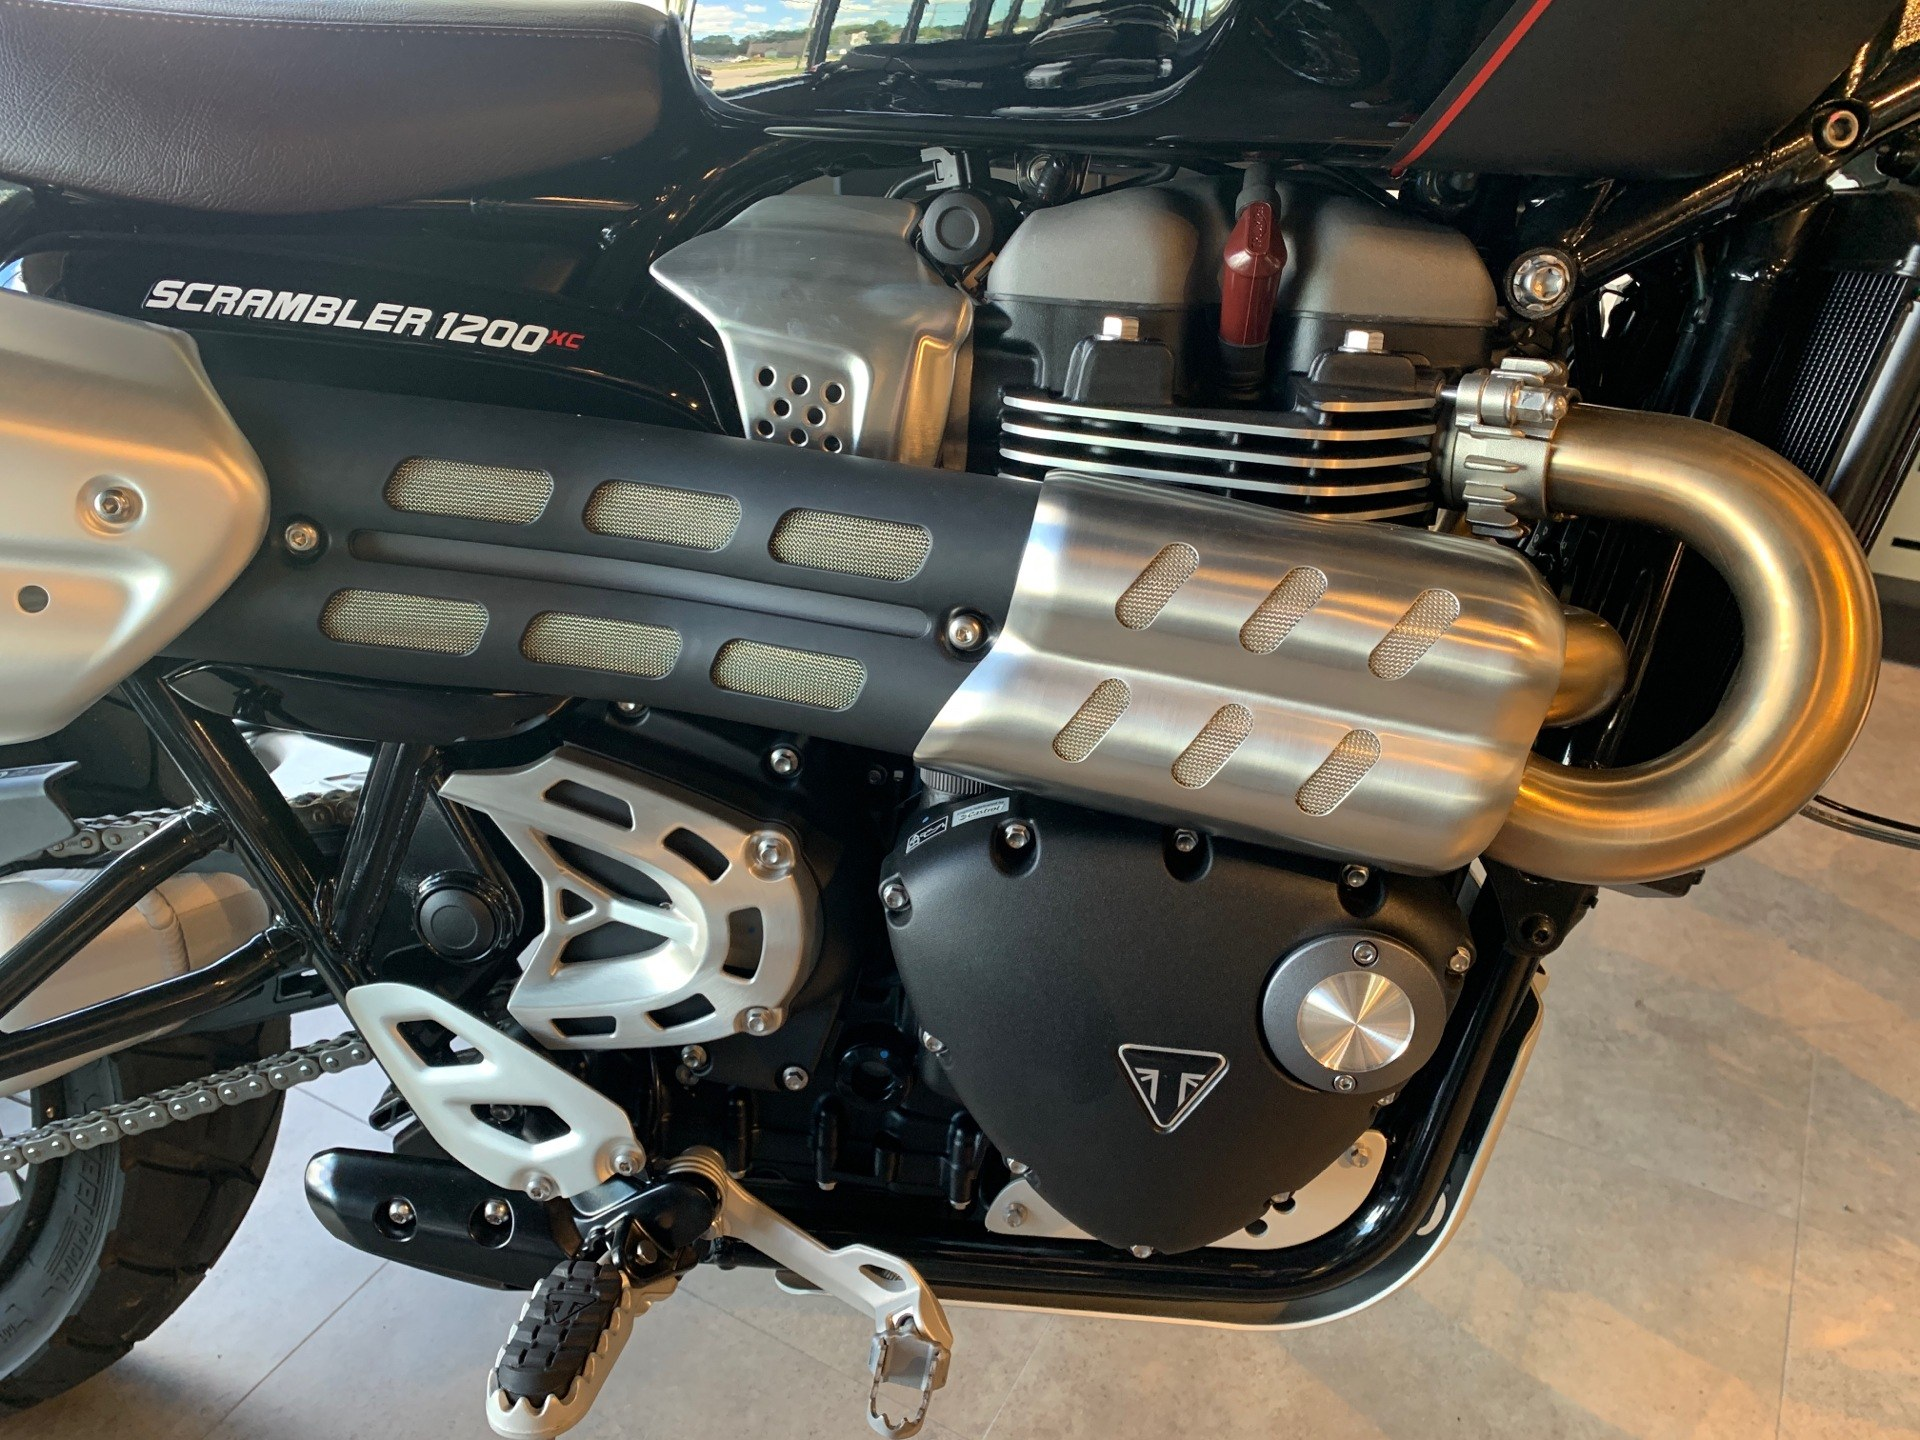 2020 Triumph Scrambler 1200 XC in Shelby Township, Michigan - Photo 4